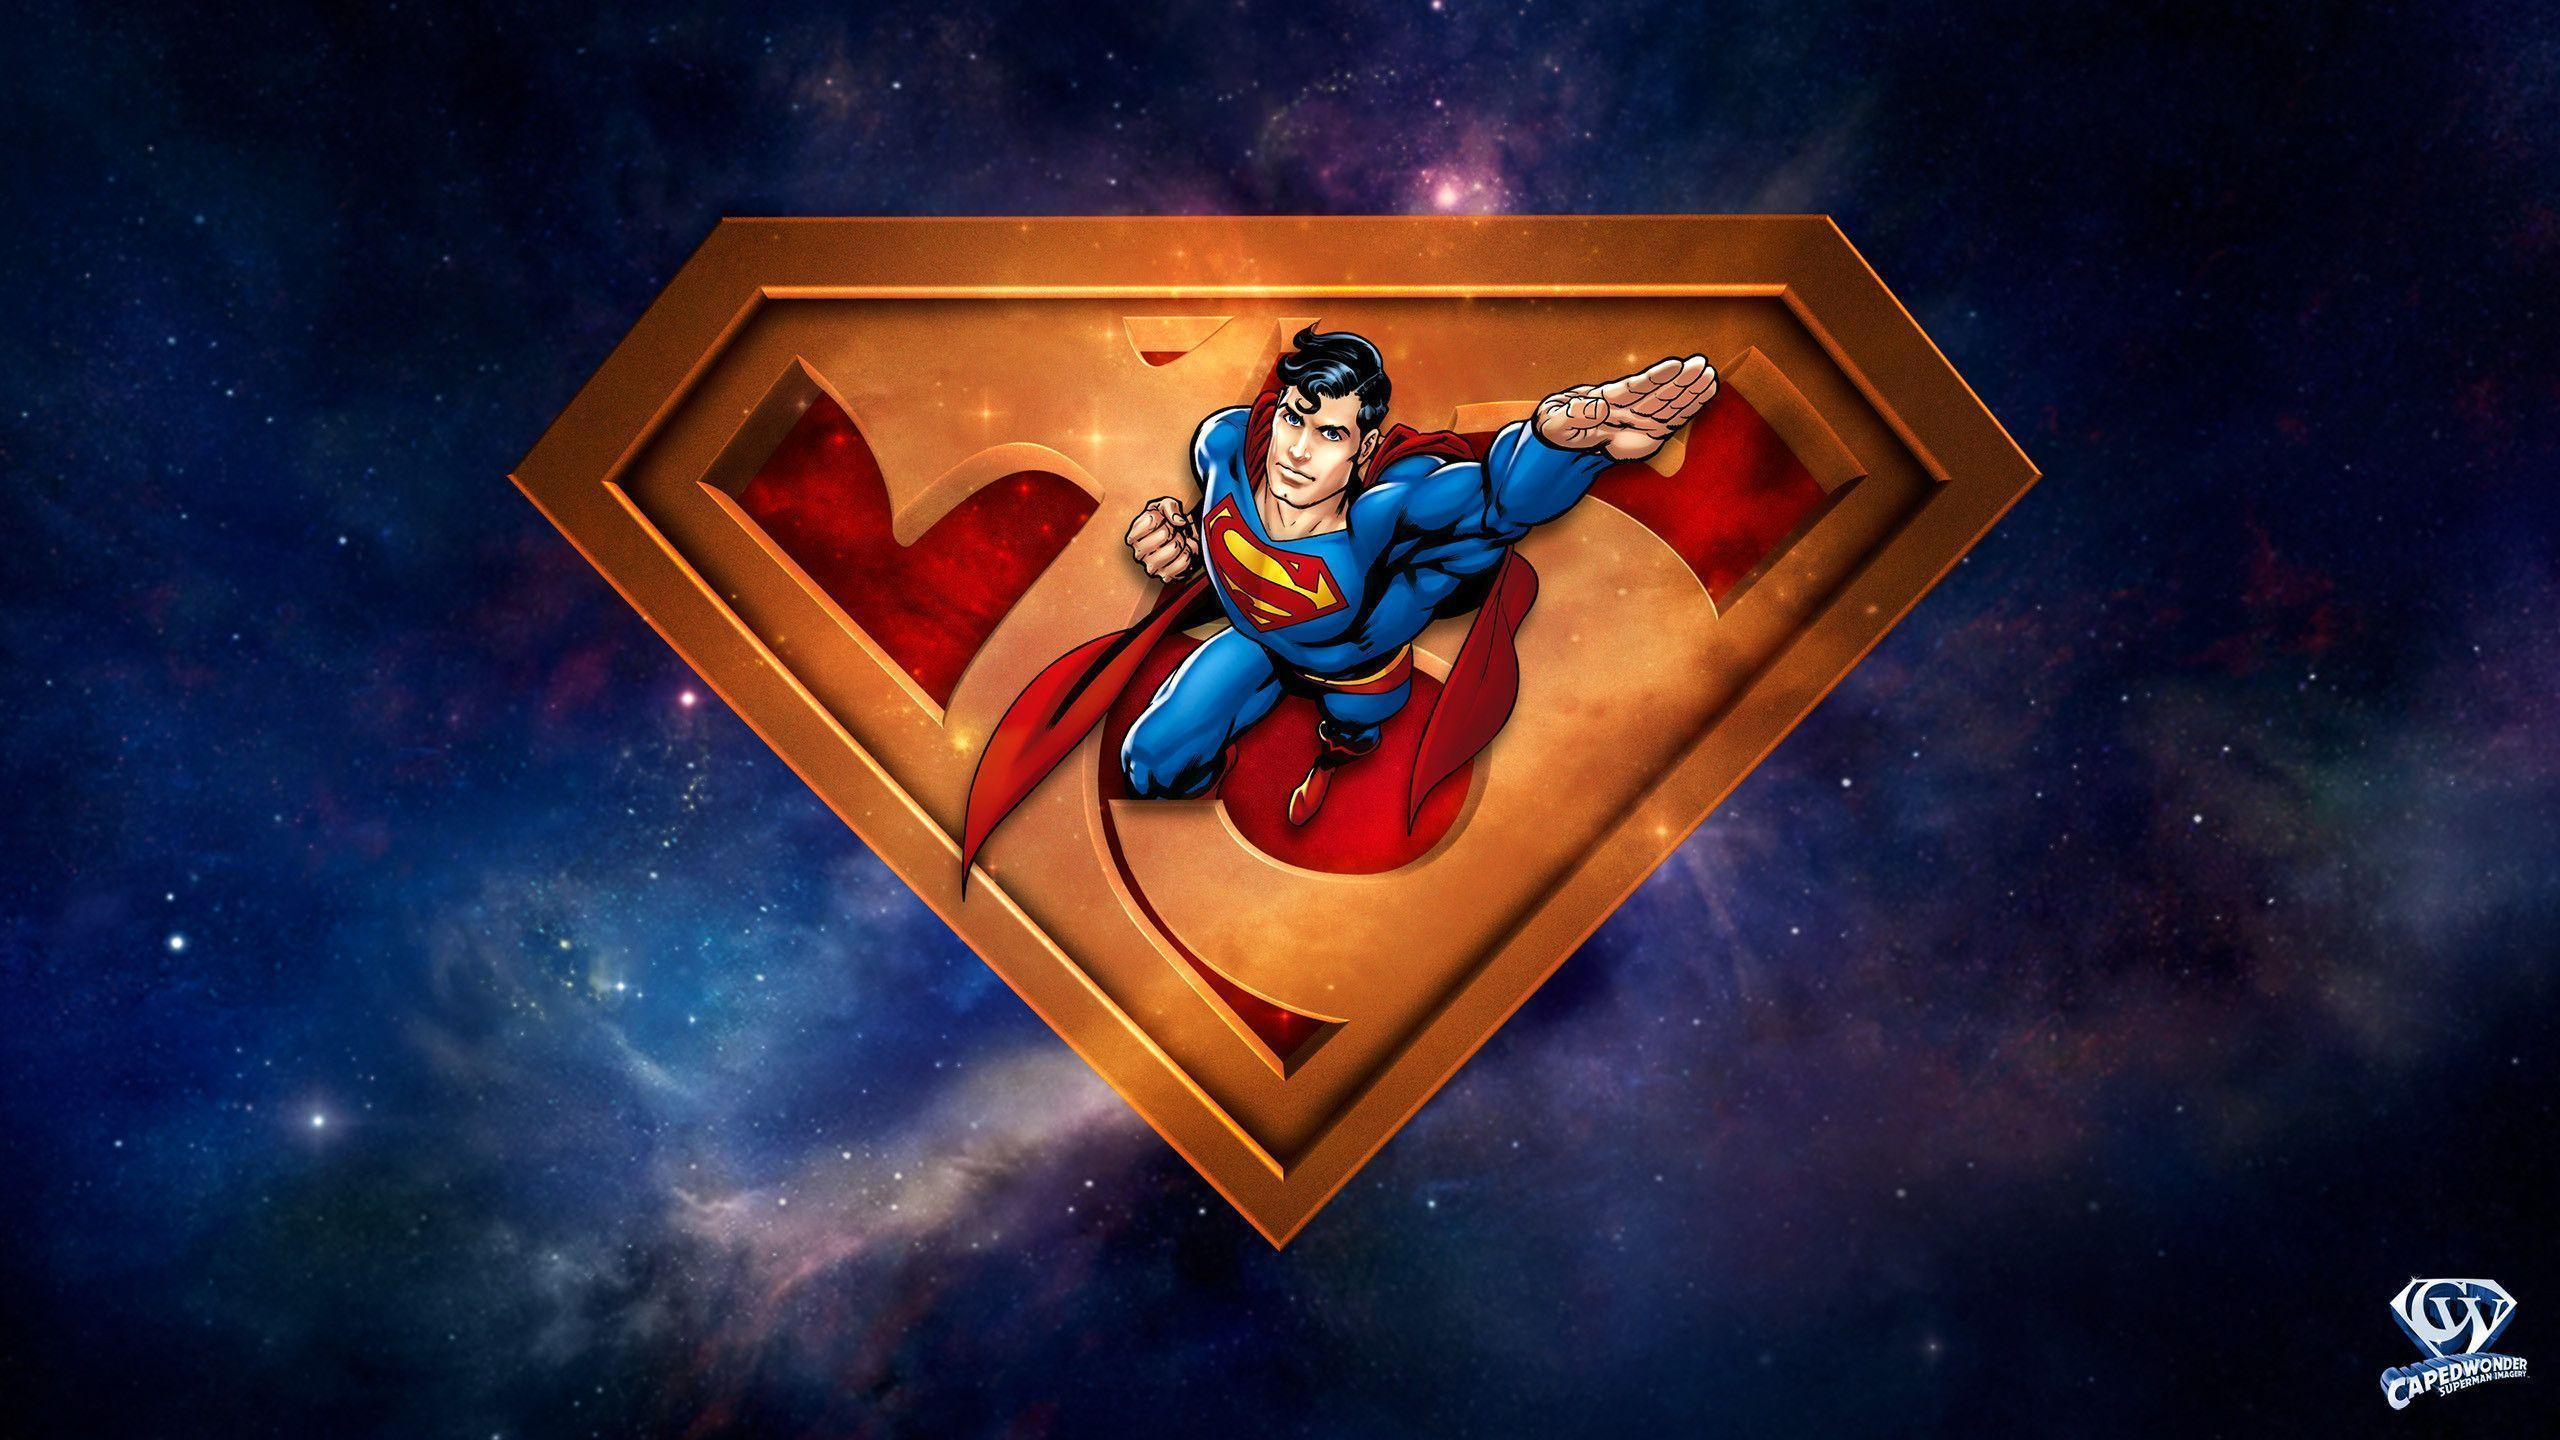 Superman 75th Anniversary Wallpaper | CapedWonder Superman Imagery ...